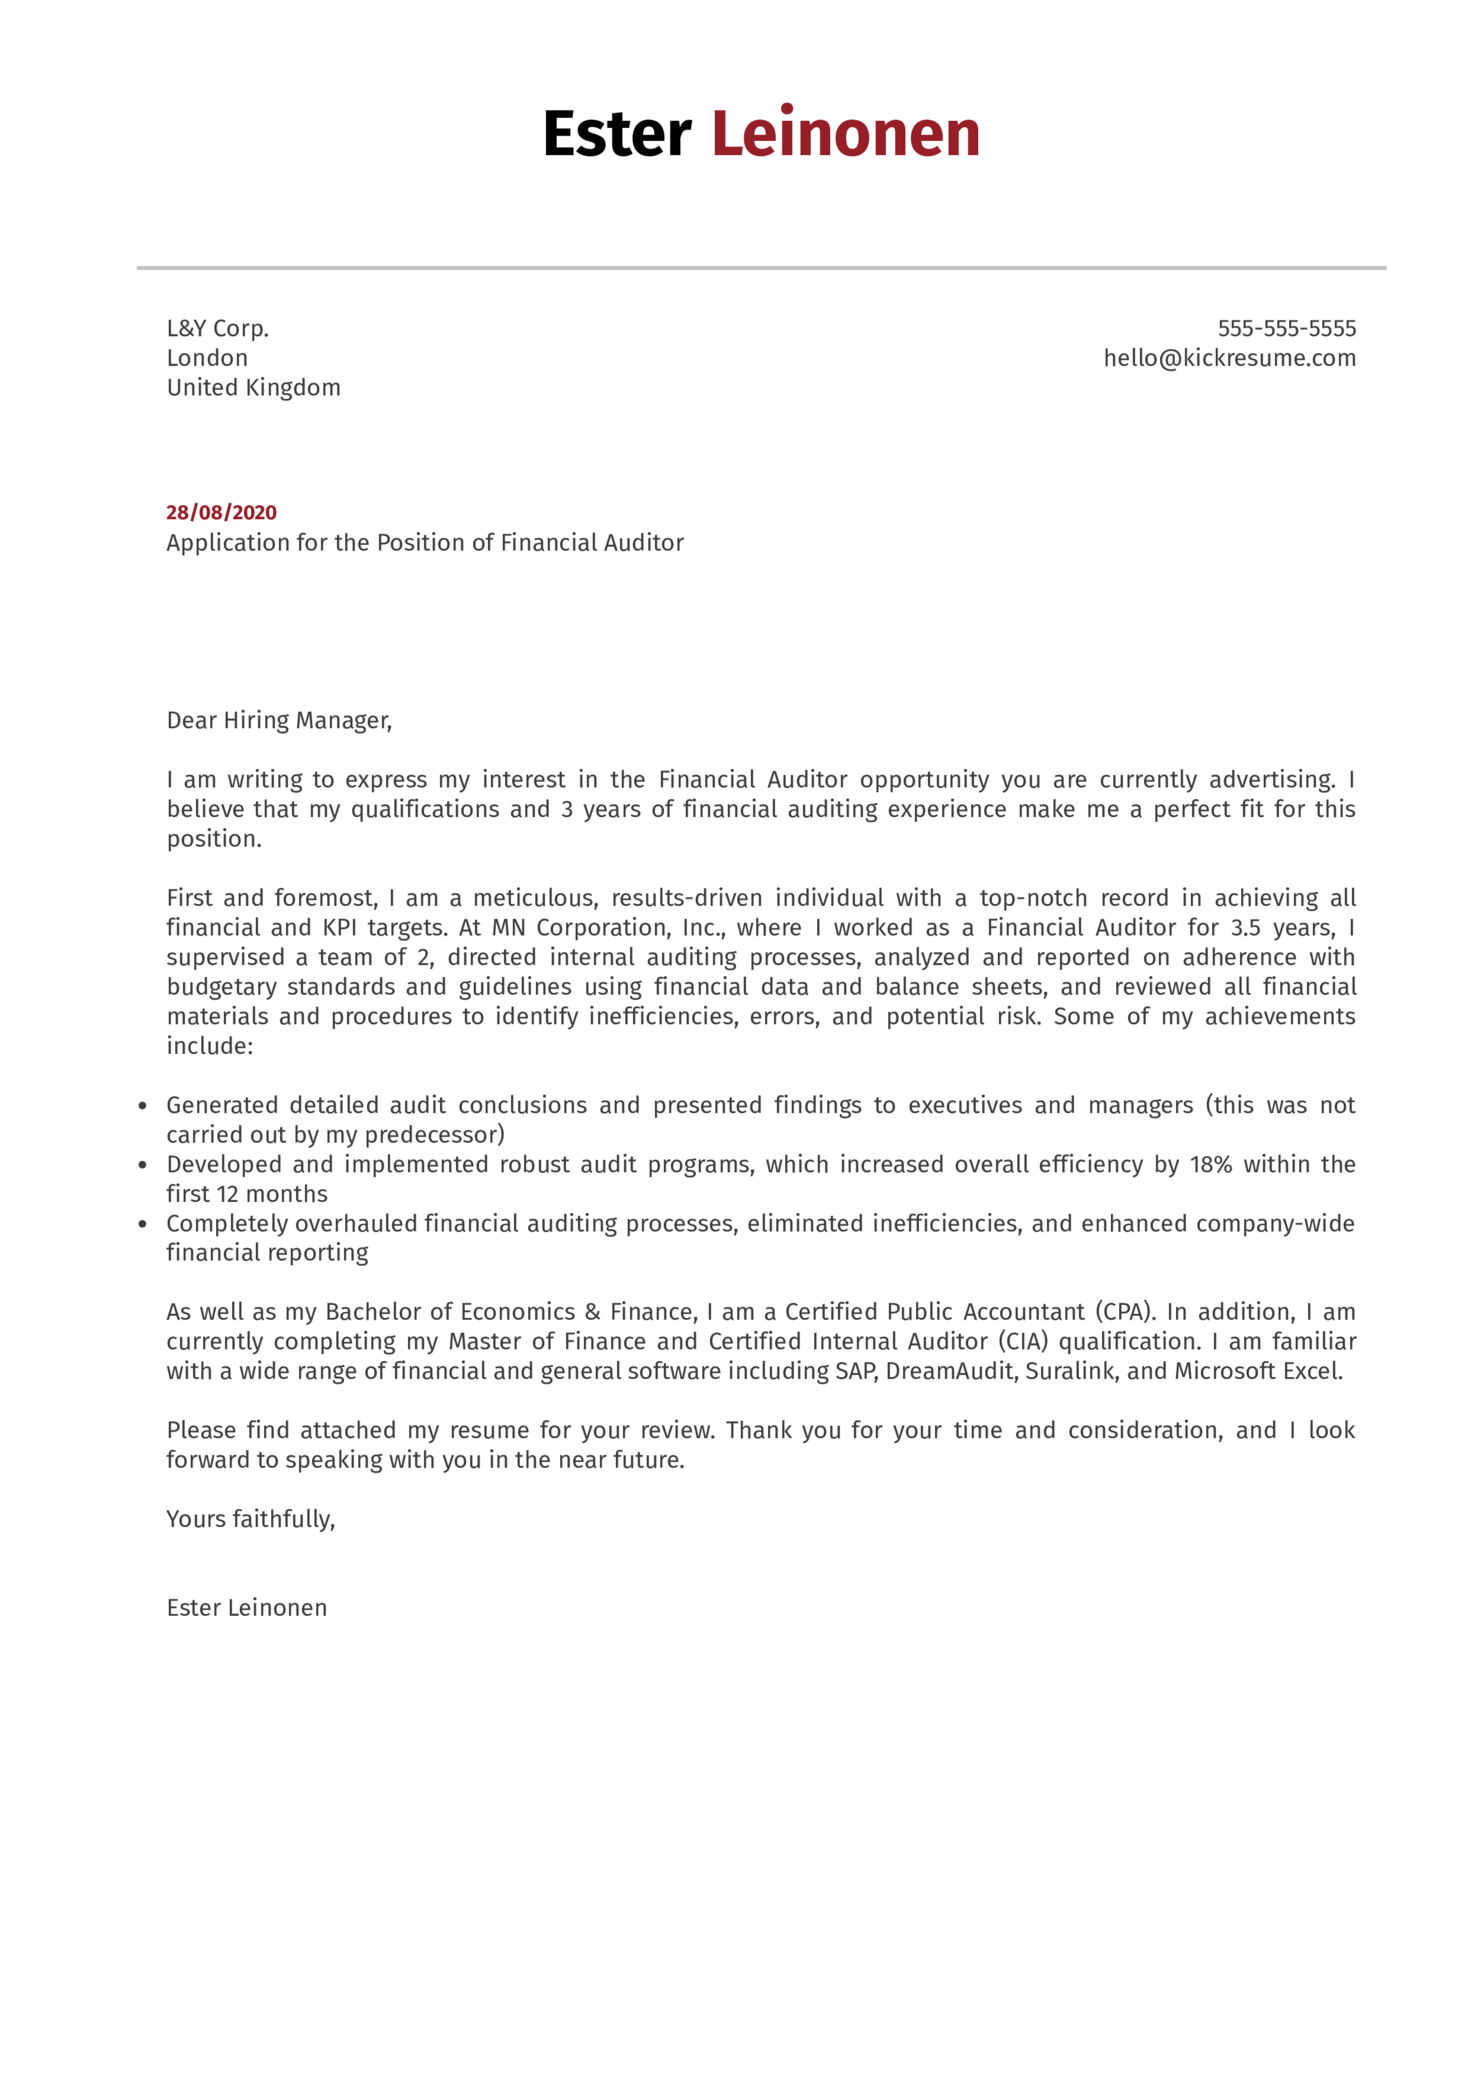 Financial Auditor Cover Letter Example